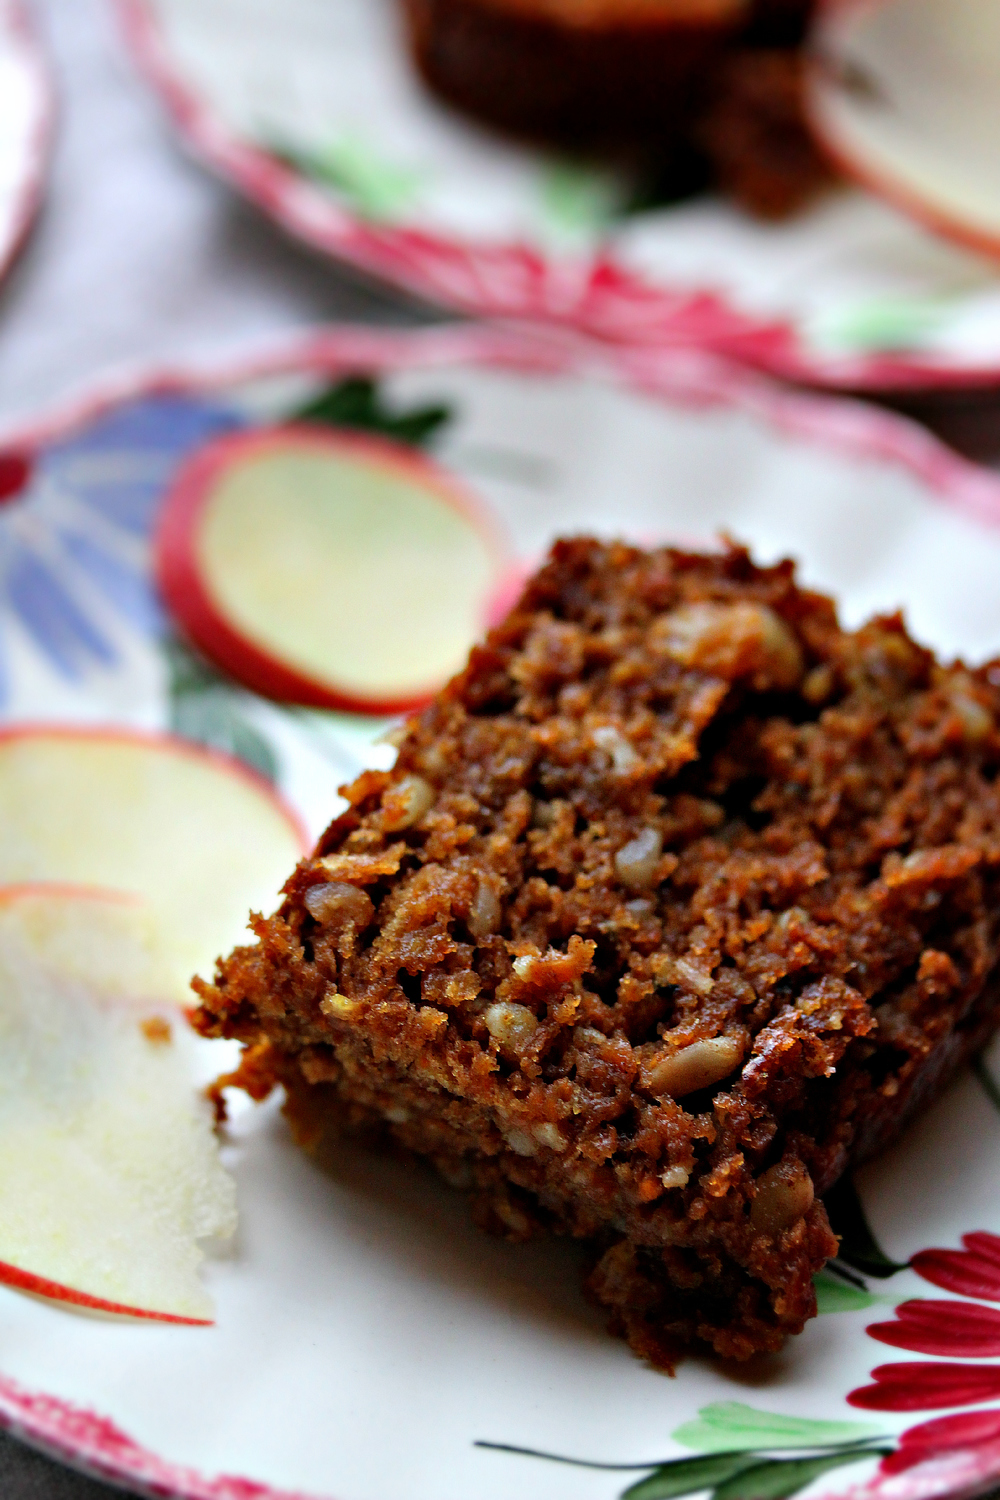 ©Carrot and Apple Teacake by Dena T Bray